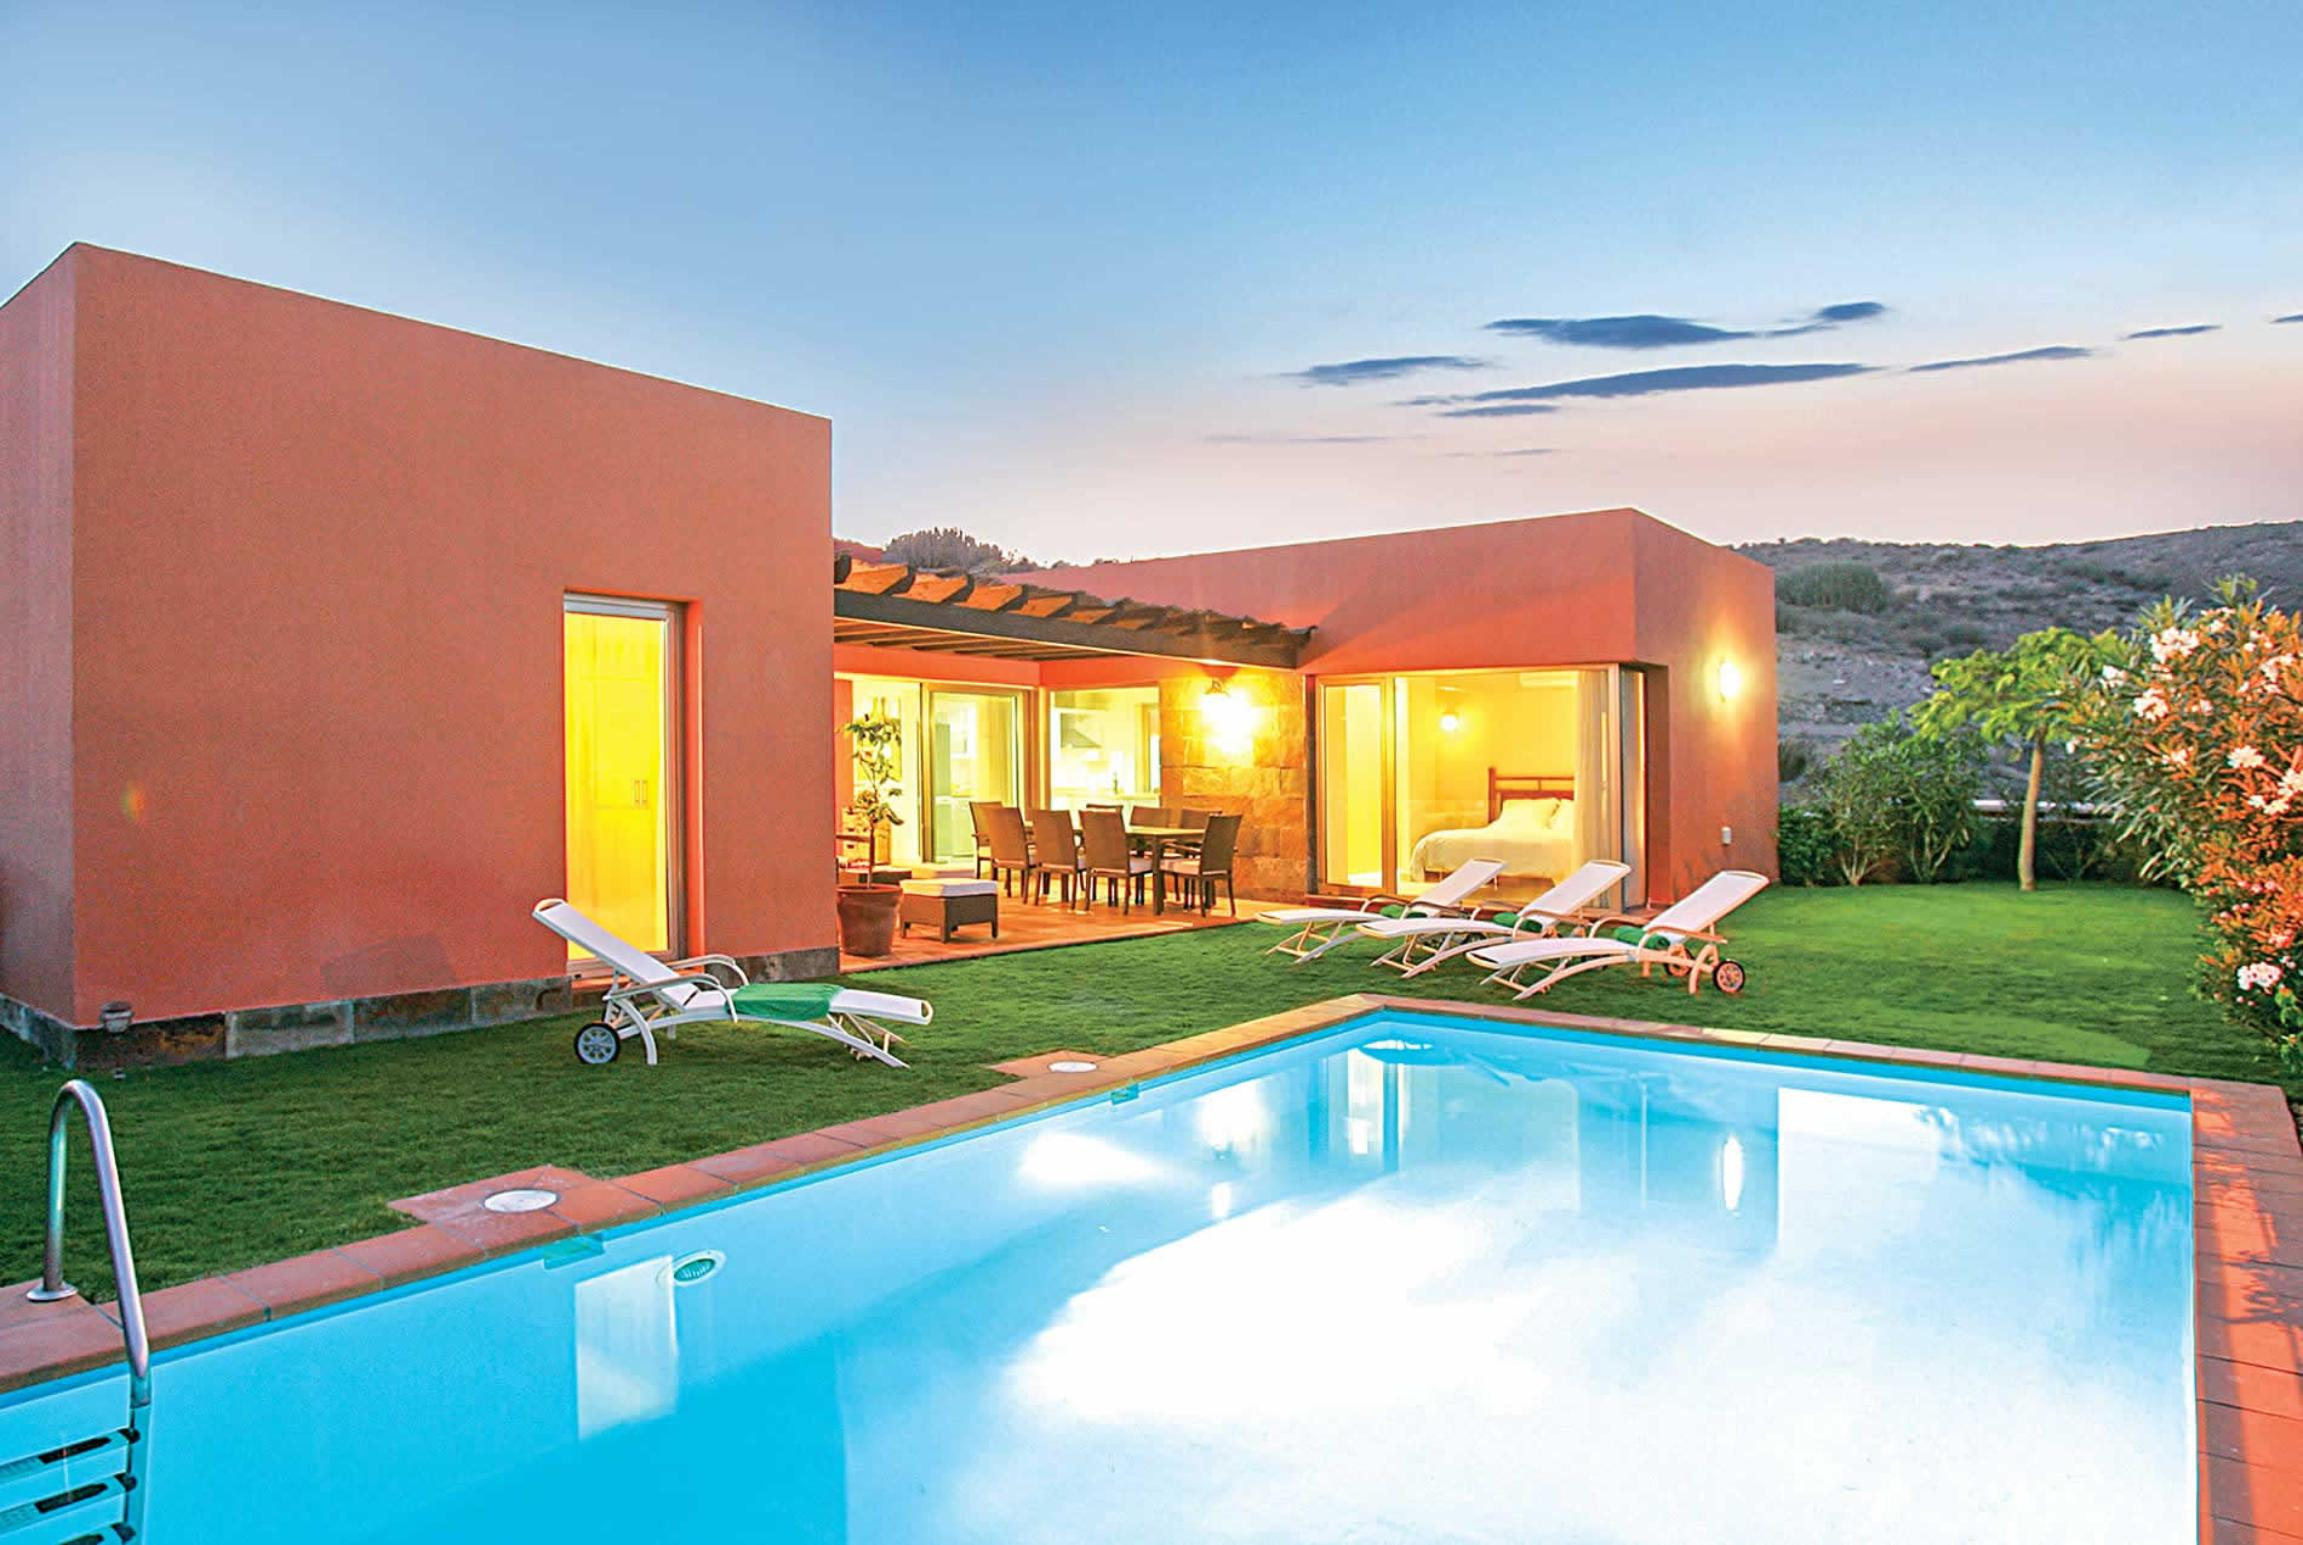 Read more about Par 4 Villa 21 villa